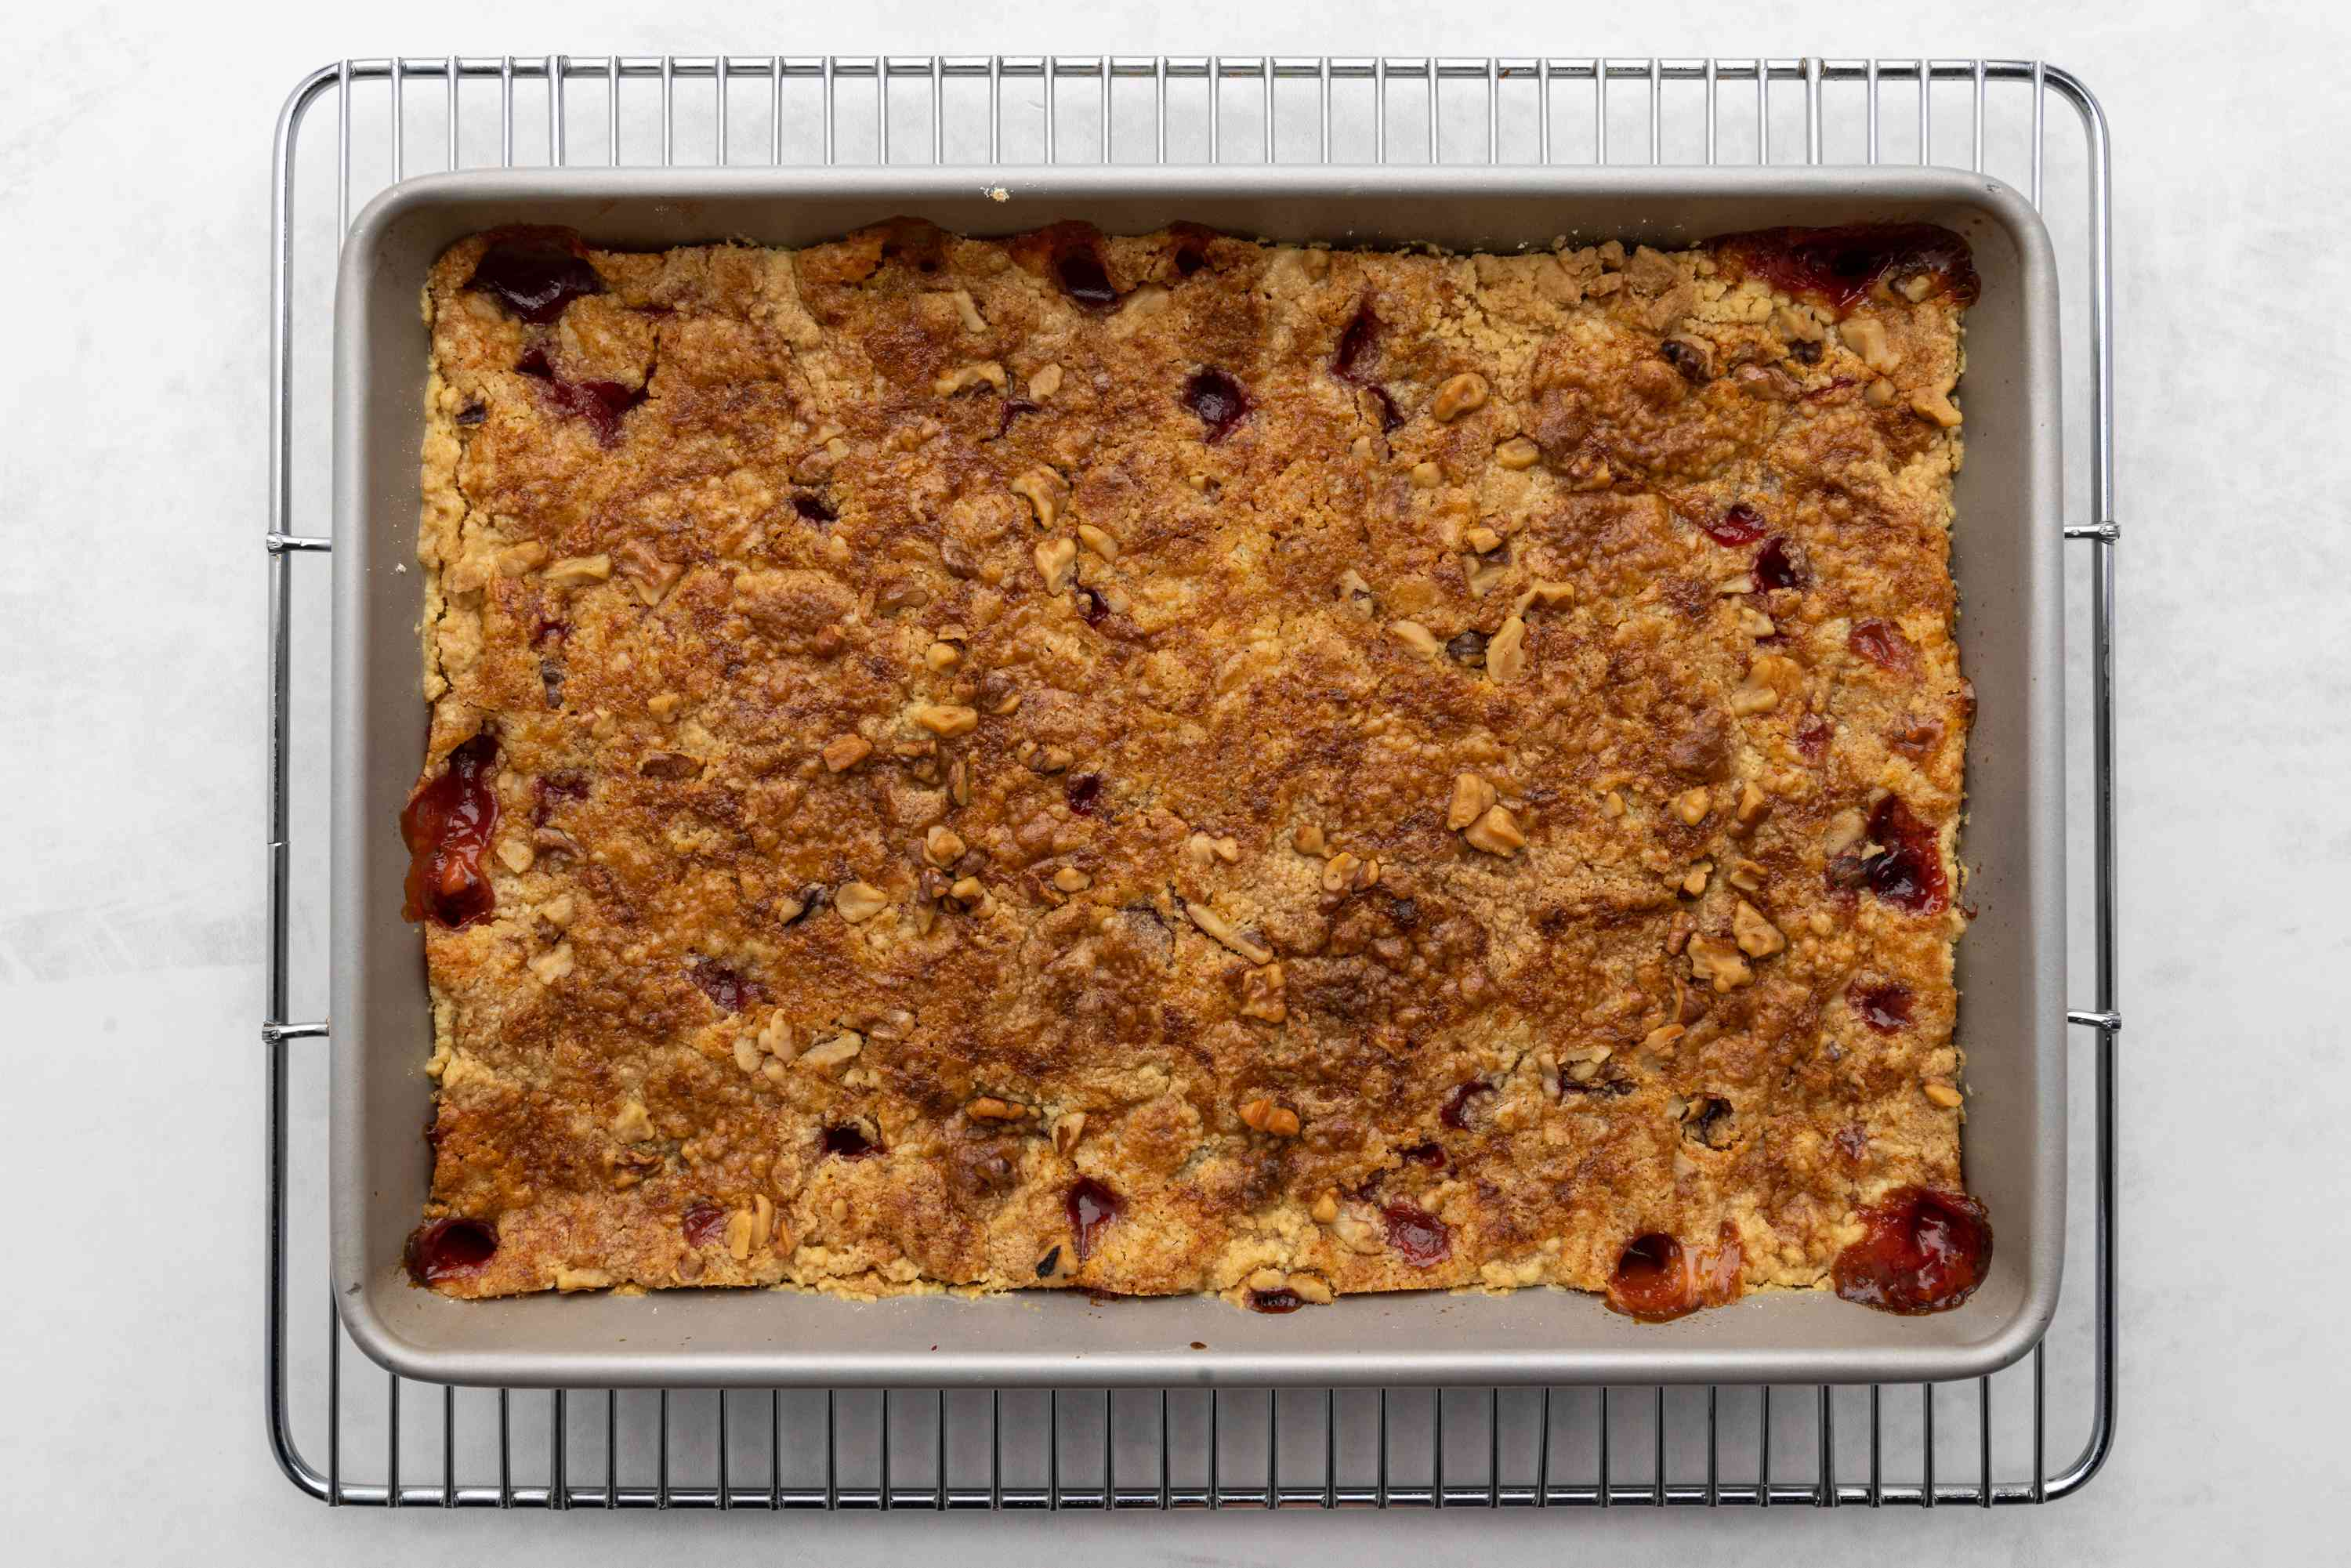 Pineapple Cherry Dump Cake (With Variations) on a cooling rack